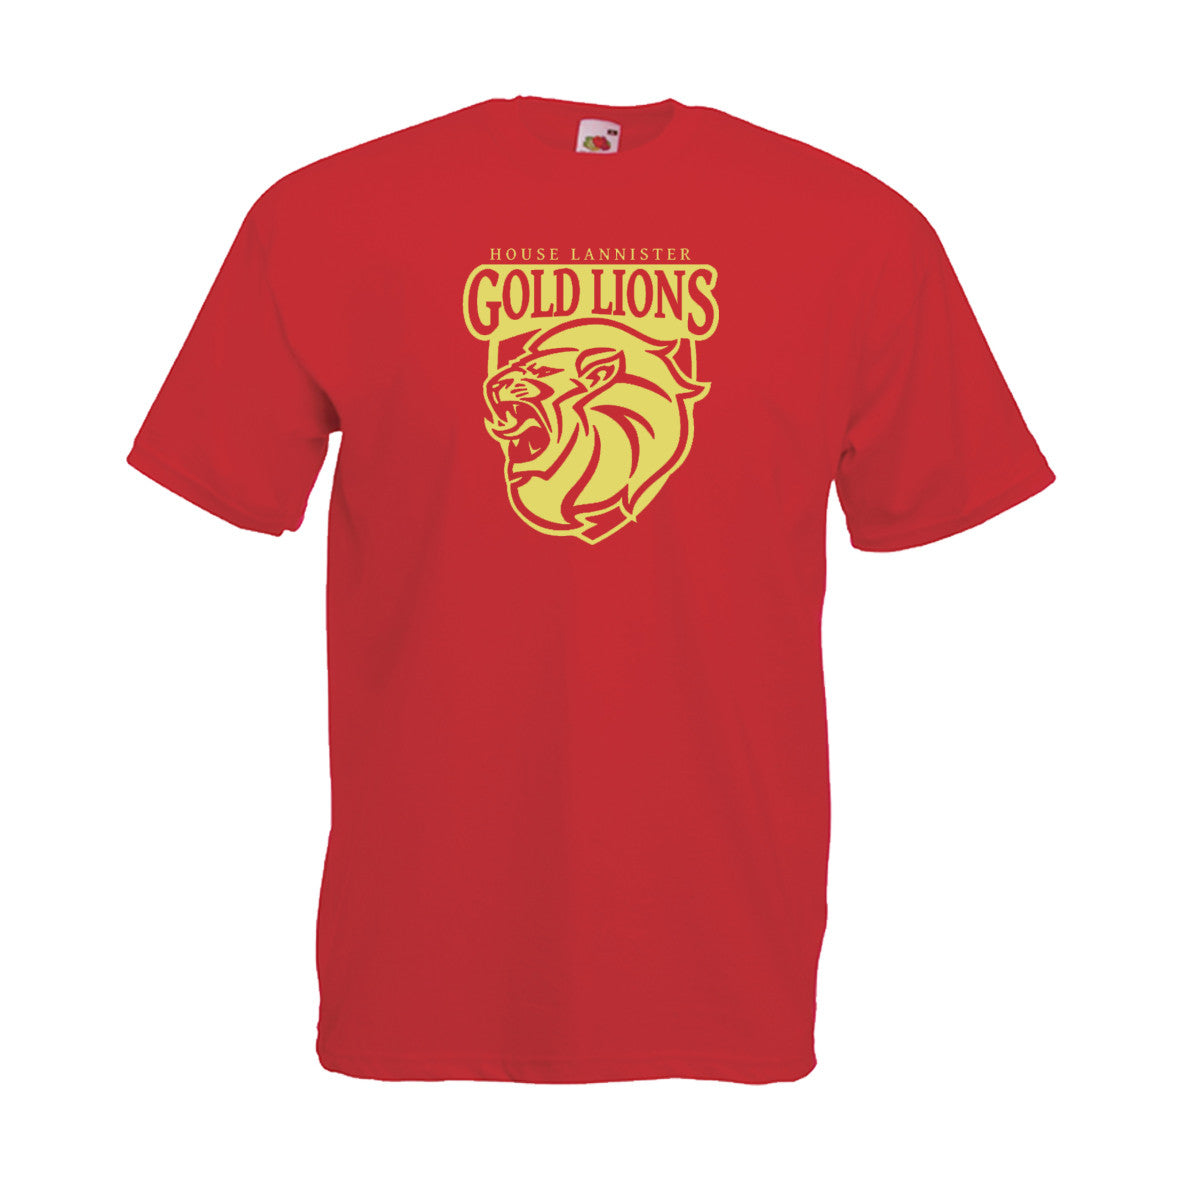 House Lannister Gold Lions